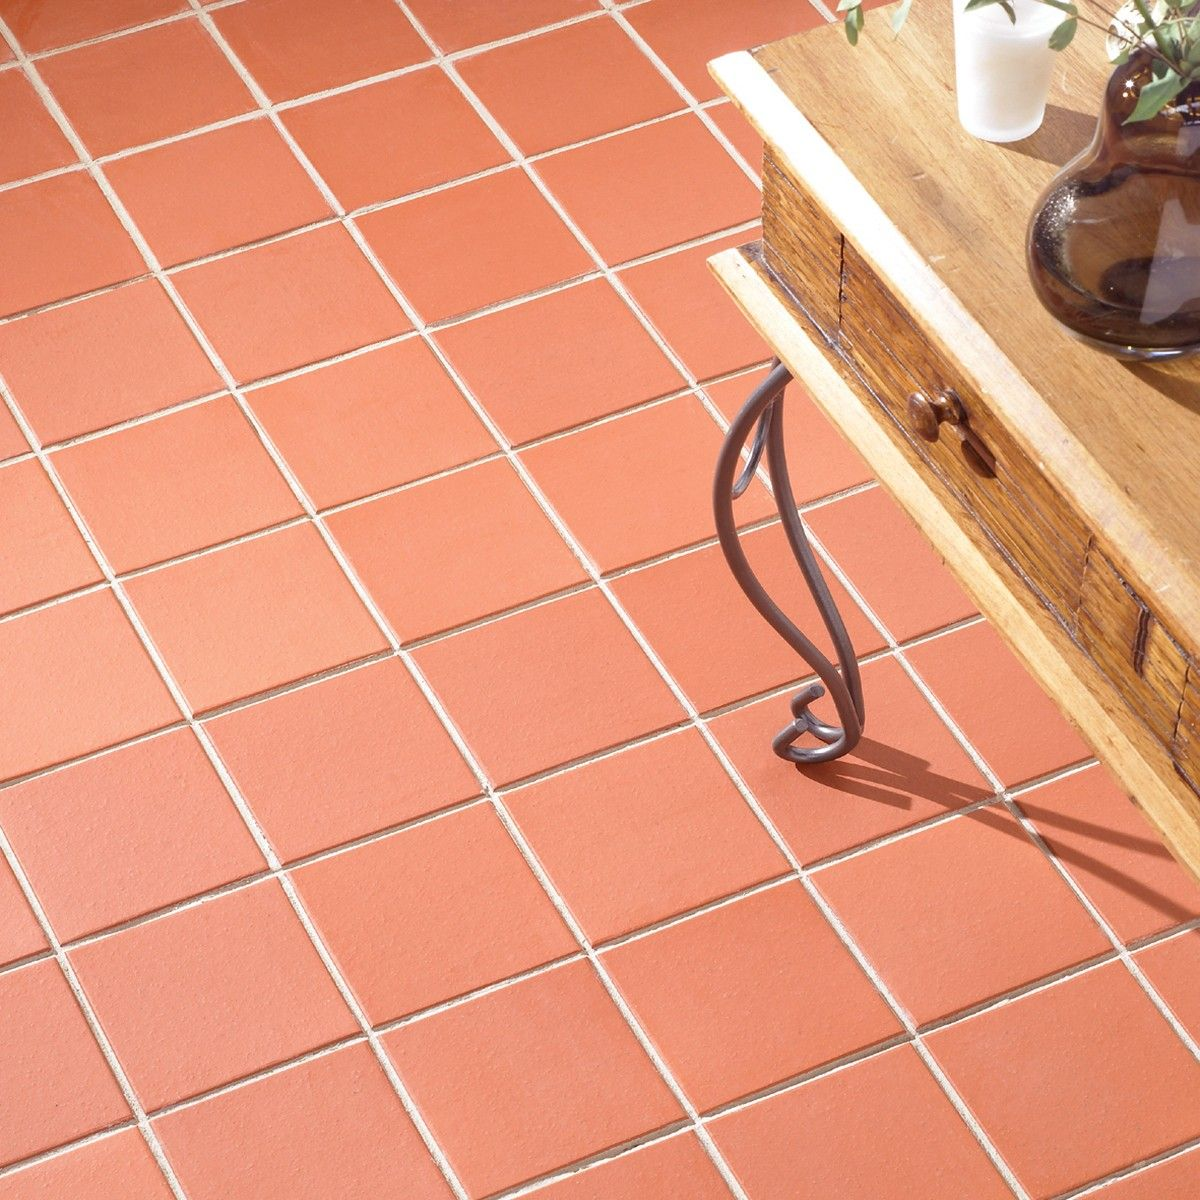 Red floor tiles choice image home flooring design crown tiles sima red quarry floor tiles crown tiles quarry crown tiles sima red quarry floor dailygadgetfo Images